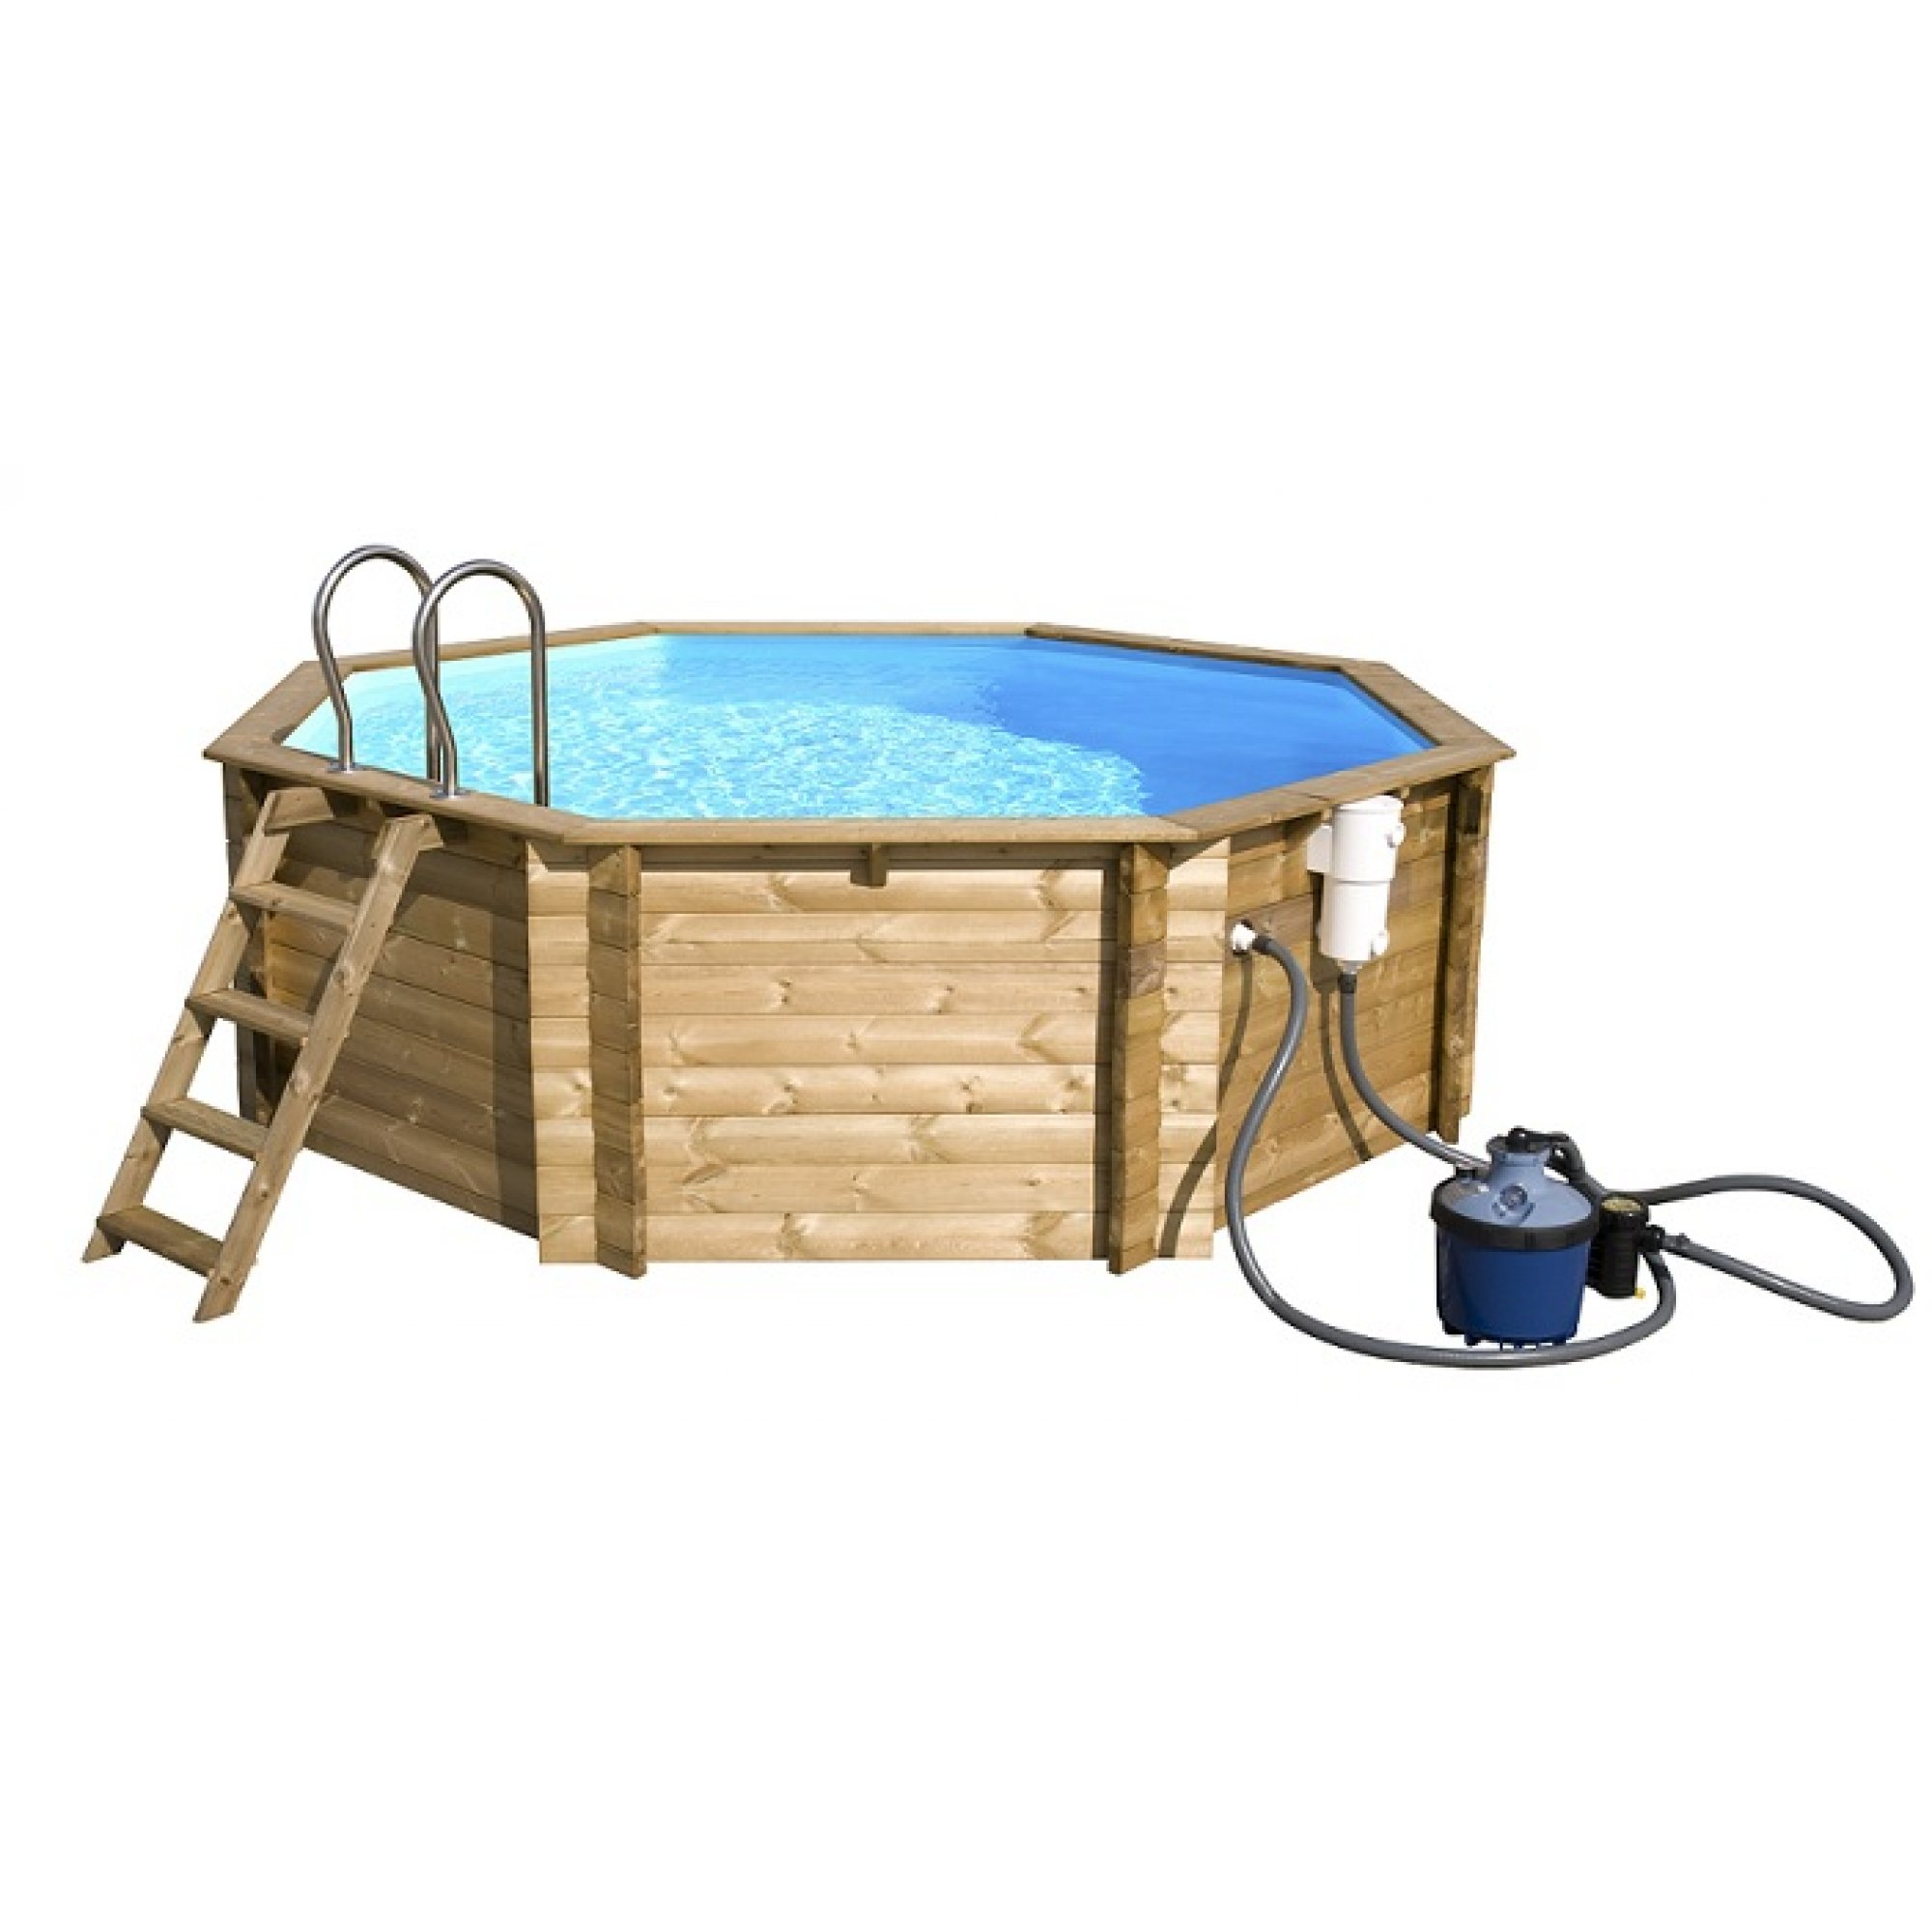 Holzpool tropic octo und octo for Piscine tropic octo 414